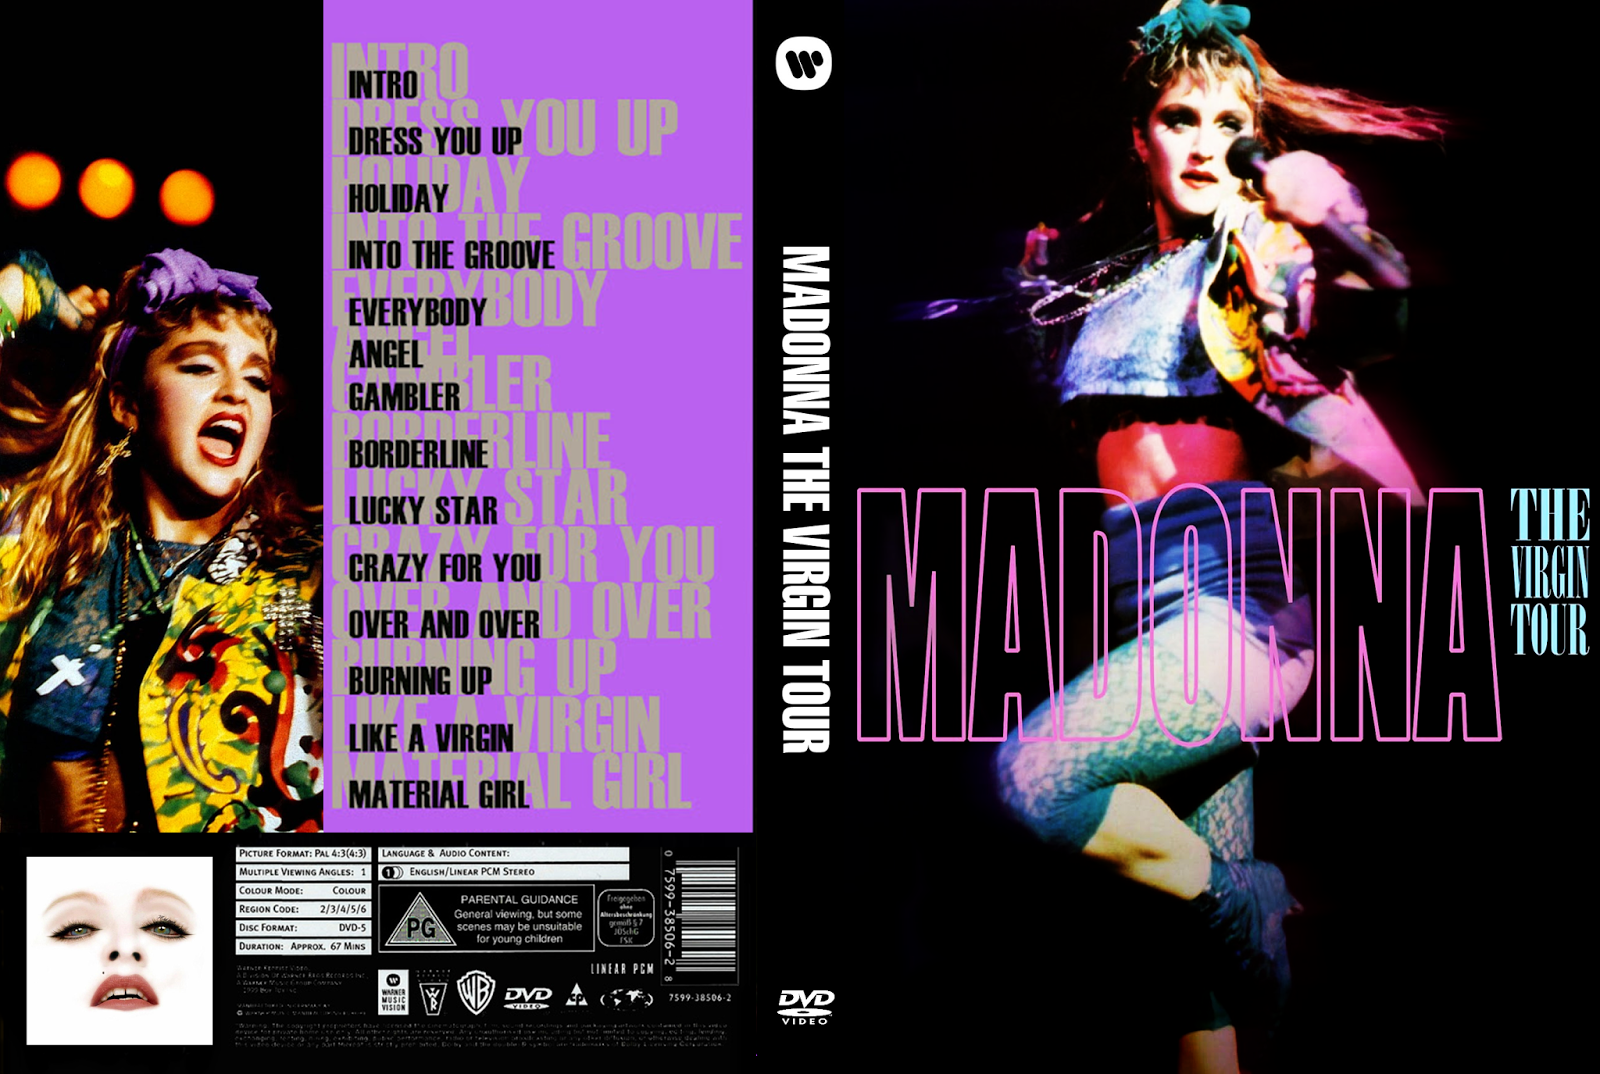 The Virgin Tour Dvd 75